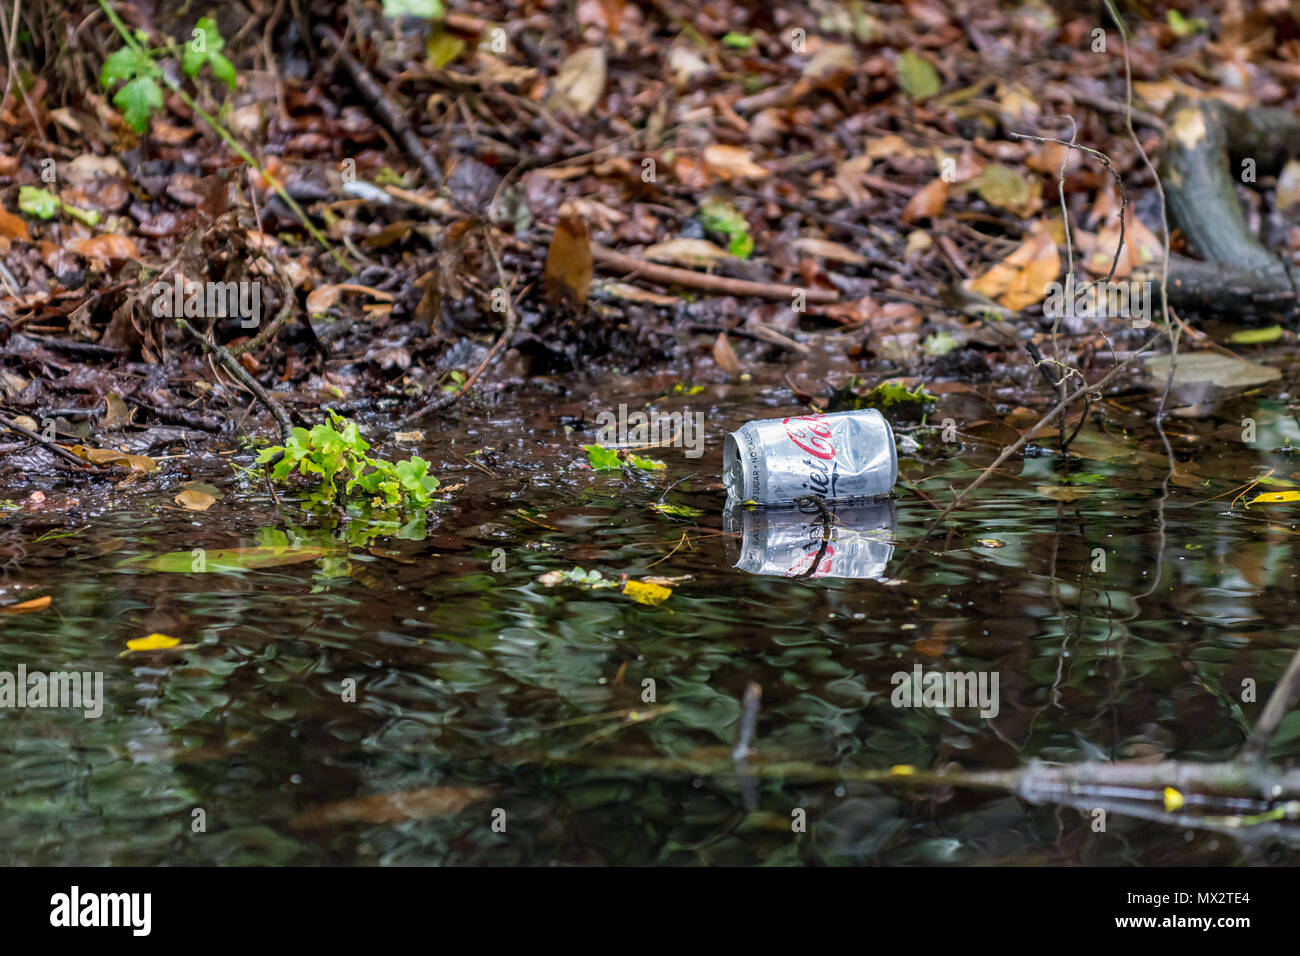 Aluminium drink (diet coca cola) can discarded as litter, floating on surface of dark water in a wooded ditch. The can is reflected in the water. - Stock Image